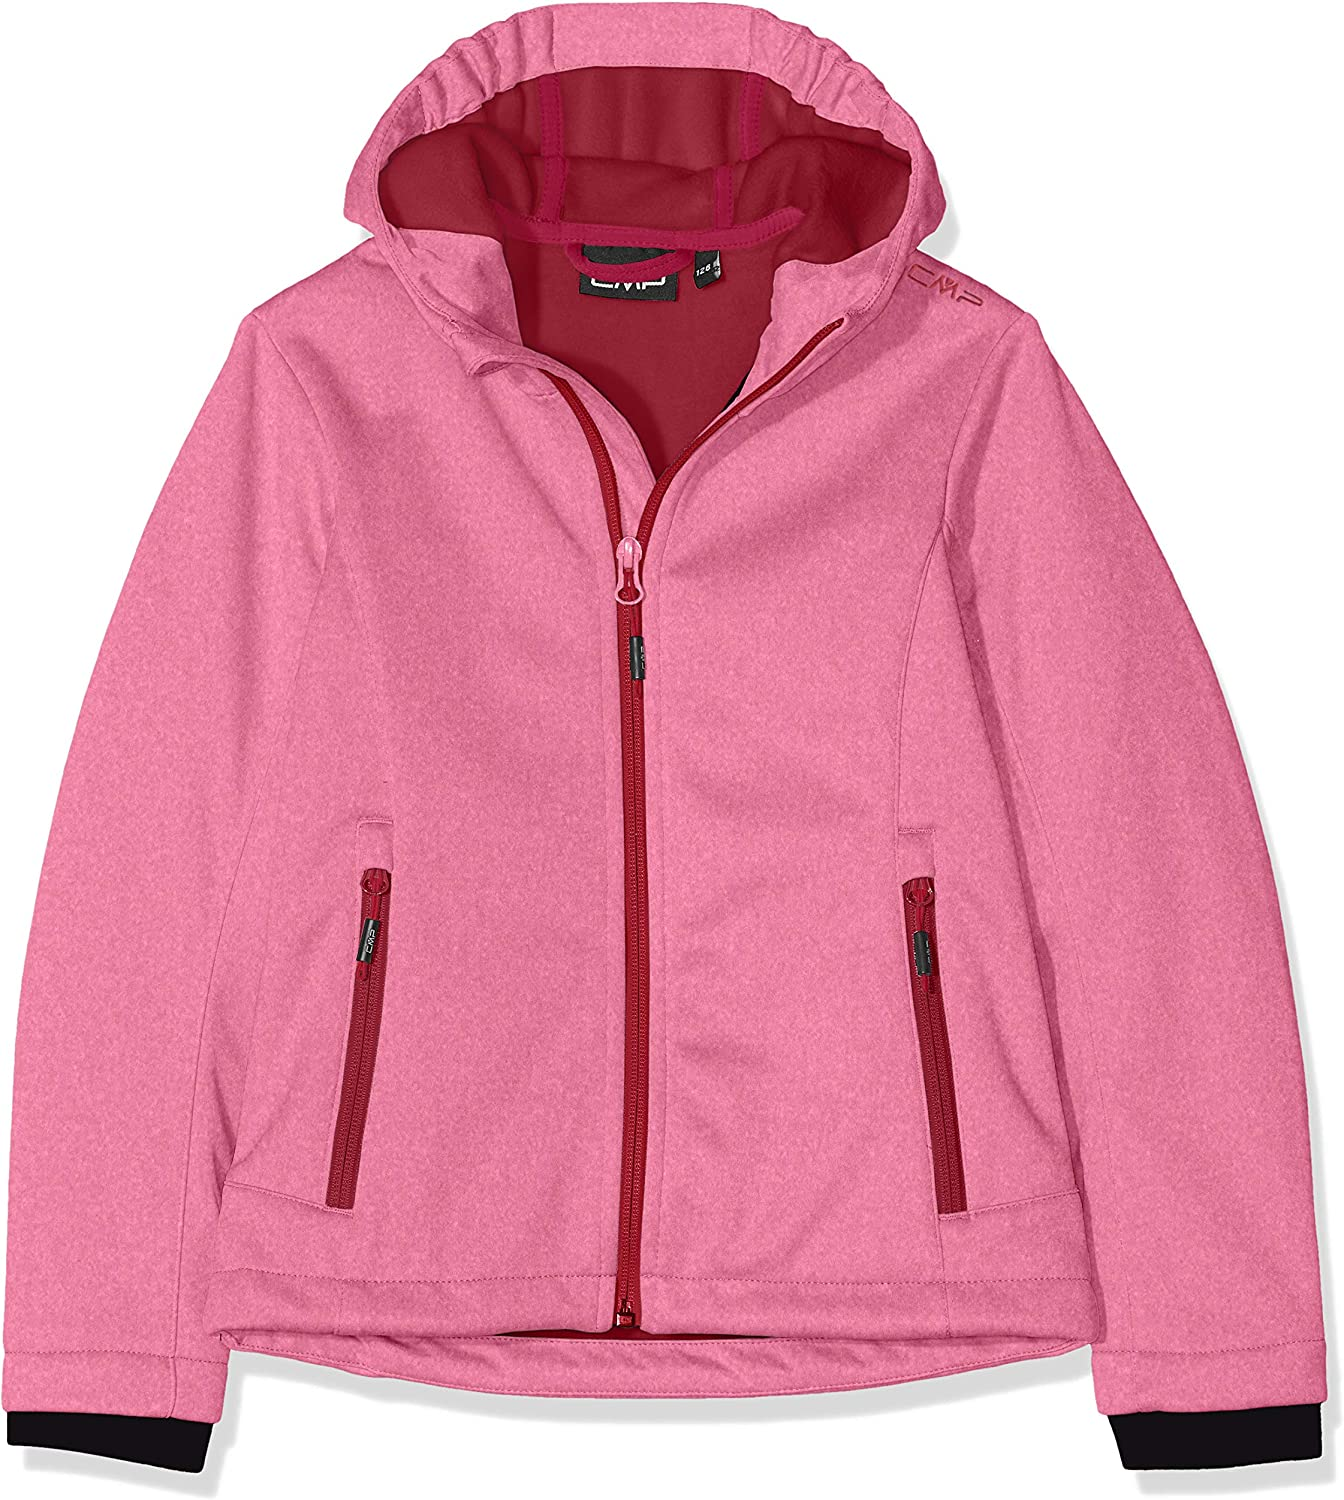 CMP Melange Softshell Jacket With Climaprotect Technology Chaqueta Chica